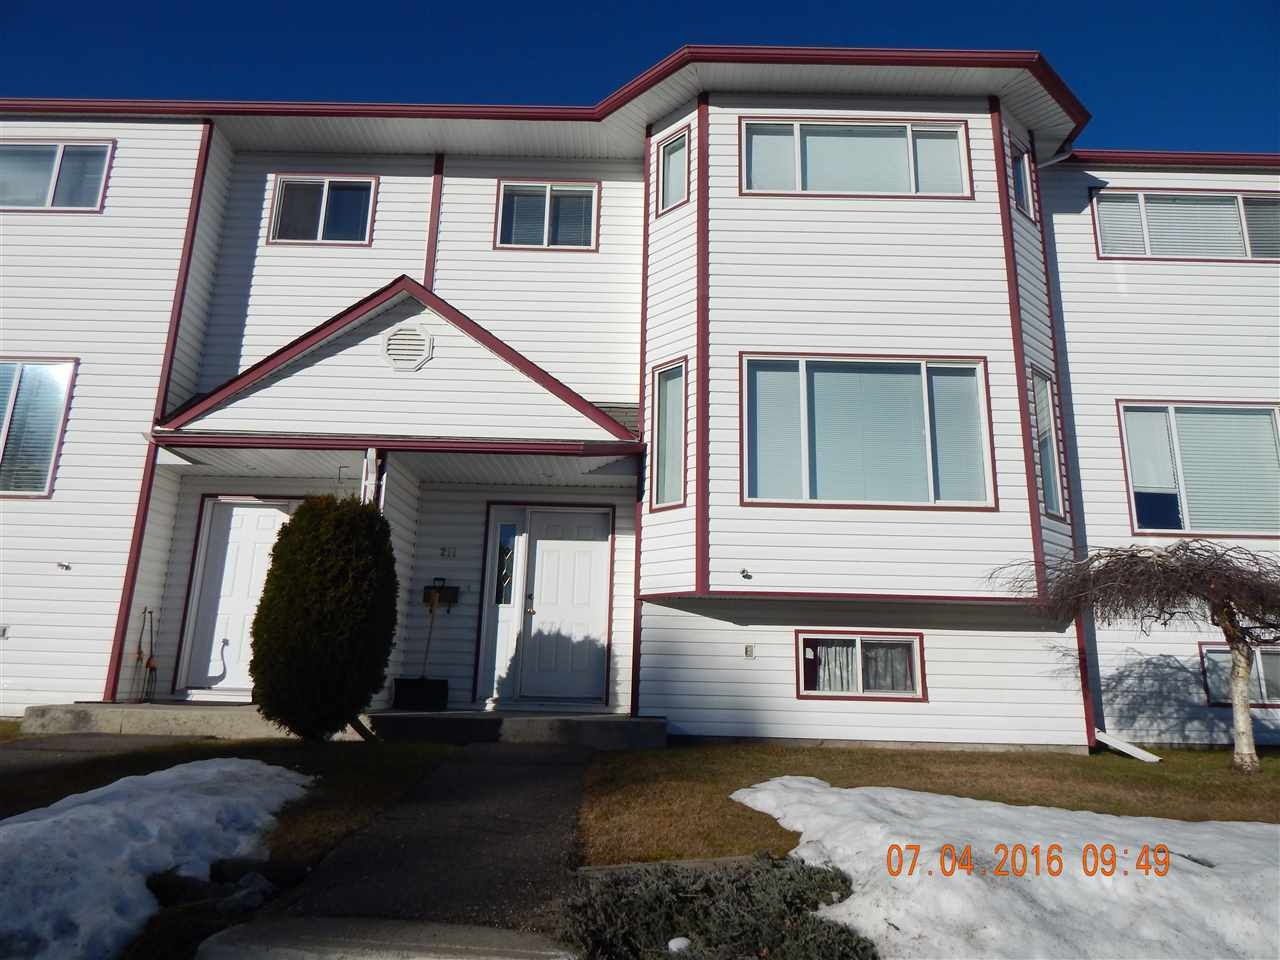 """Main Photo: 211 3015 ST ANNE Crescent in Prince George: St. Lawrence Heights Townhouse for sale in """"SOUTHRIDGE / ST LAWRENCE HEIGHTS"""" (PG City South (Zone 74))  : MLS®# R2044561"""